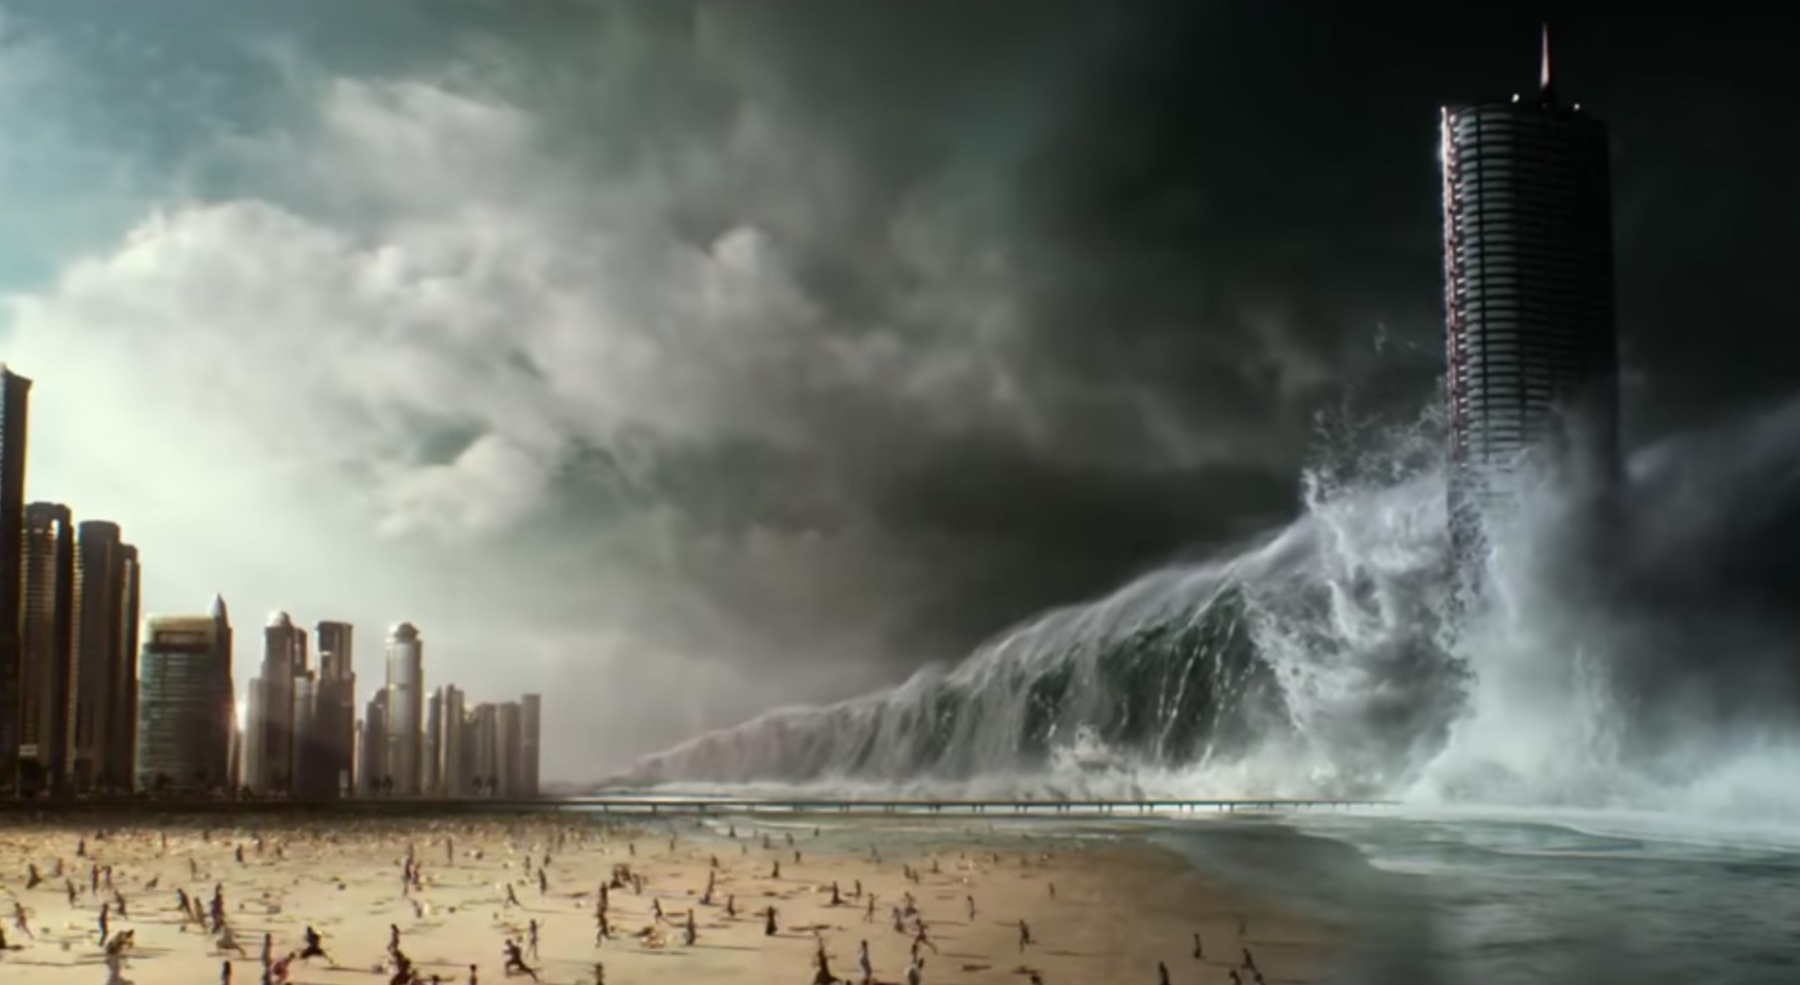 New 'Geostorm' Trailer Sees Earth Hit by Very Literal Man-Made Climate Change